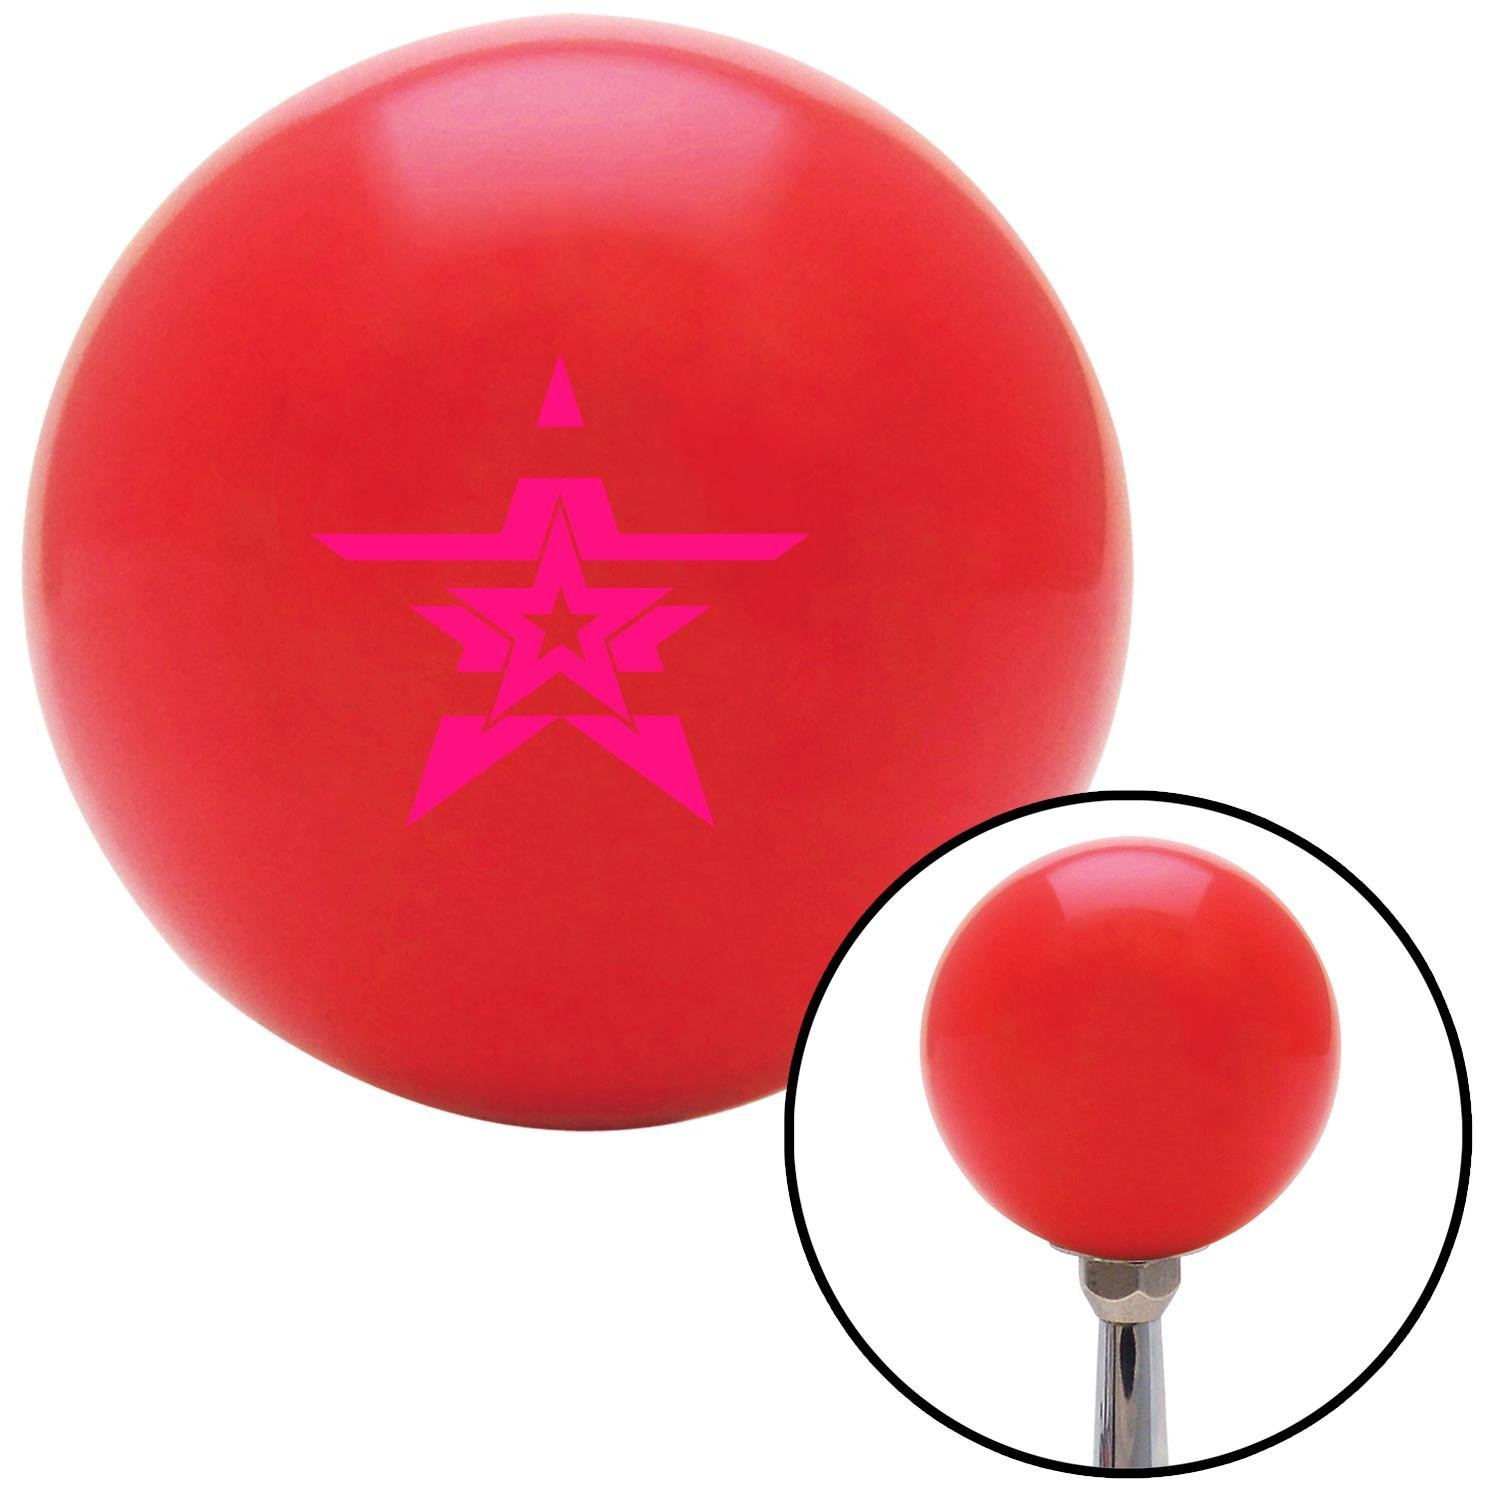 Pink Star in a Star in a Star American Shifter 101424 Red Shift Knob with M16 x 1.5 Insert